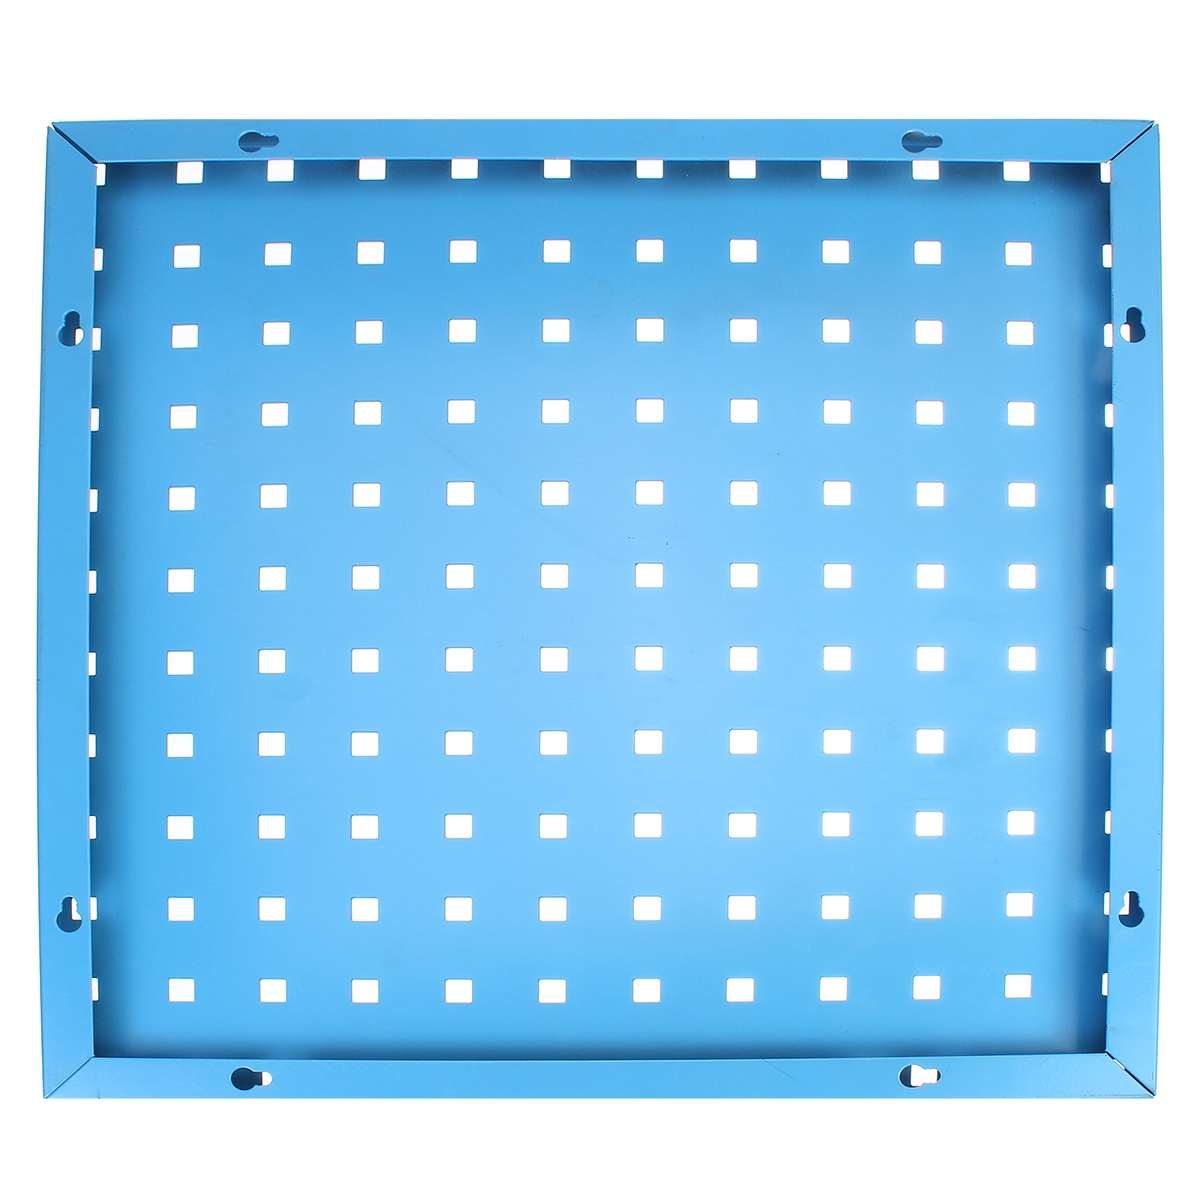 Tools : Multifunction Wall-Mounted Steel Tool Hanging Board Organizer  Pegboard Panels Parts Storage for Small and Heavy Duty Tool Board